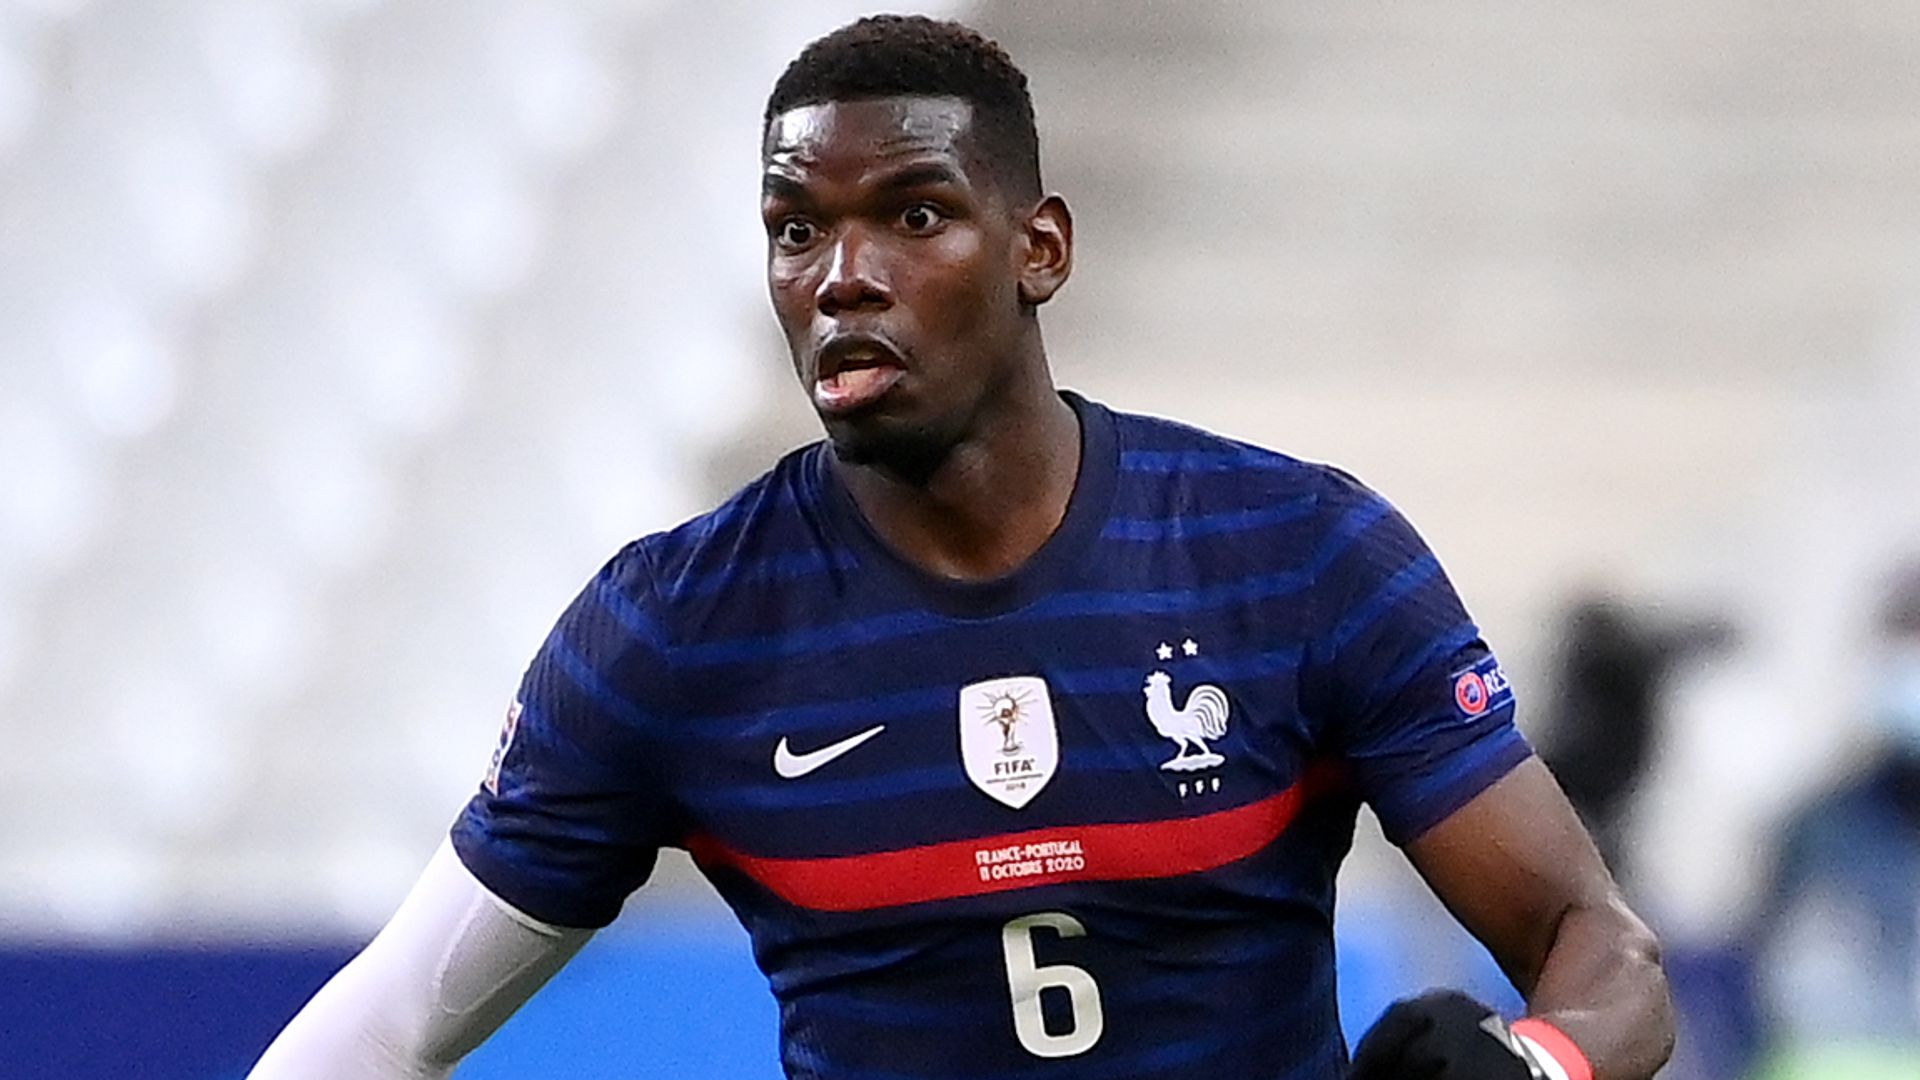 'Angry' Pogba denies he quit France team